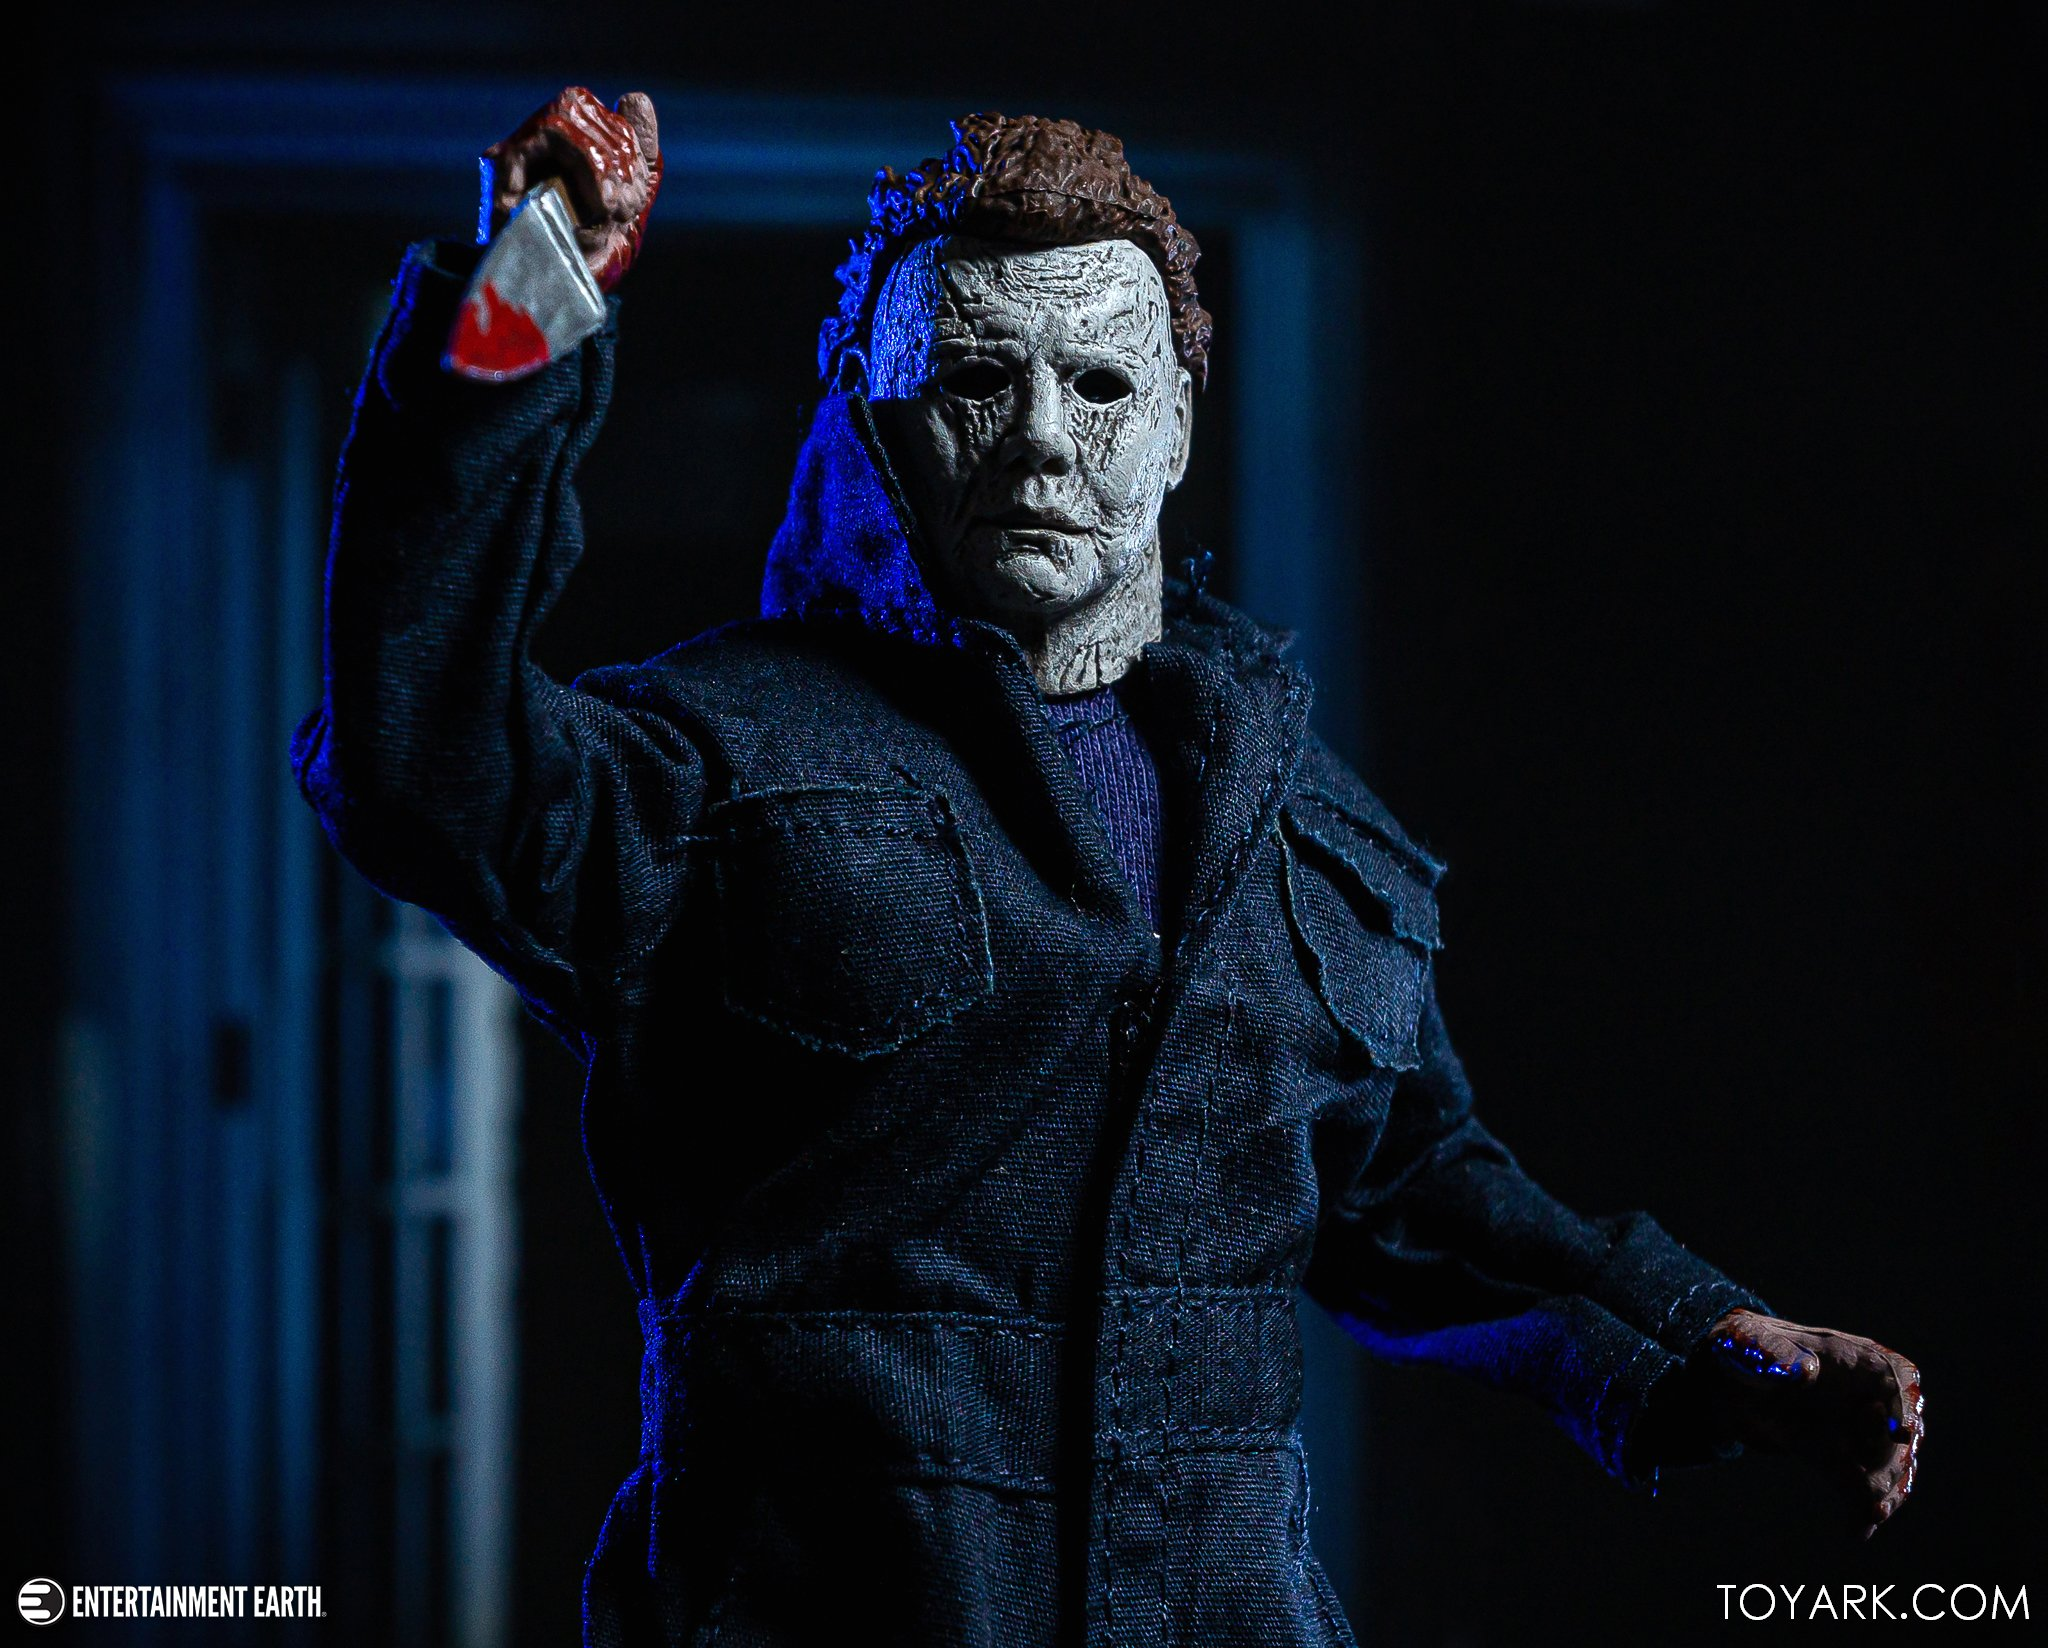 https://news.toyark.com/wp-content/uploads/sites/4/2020/01/Halloween-2018-Retro-Michael-Myers-013.jpg